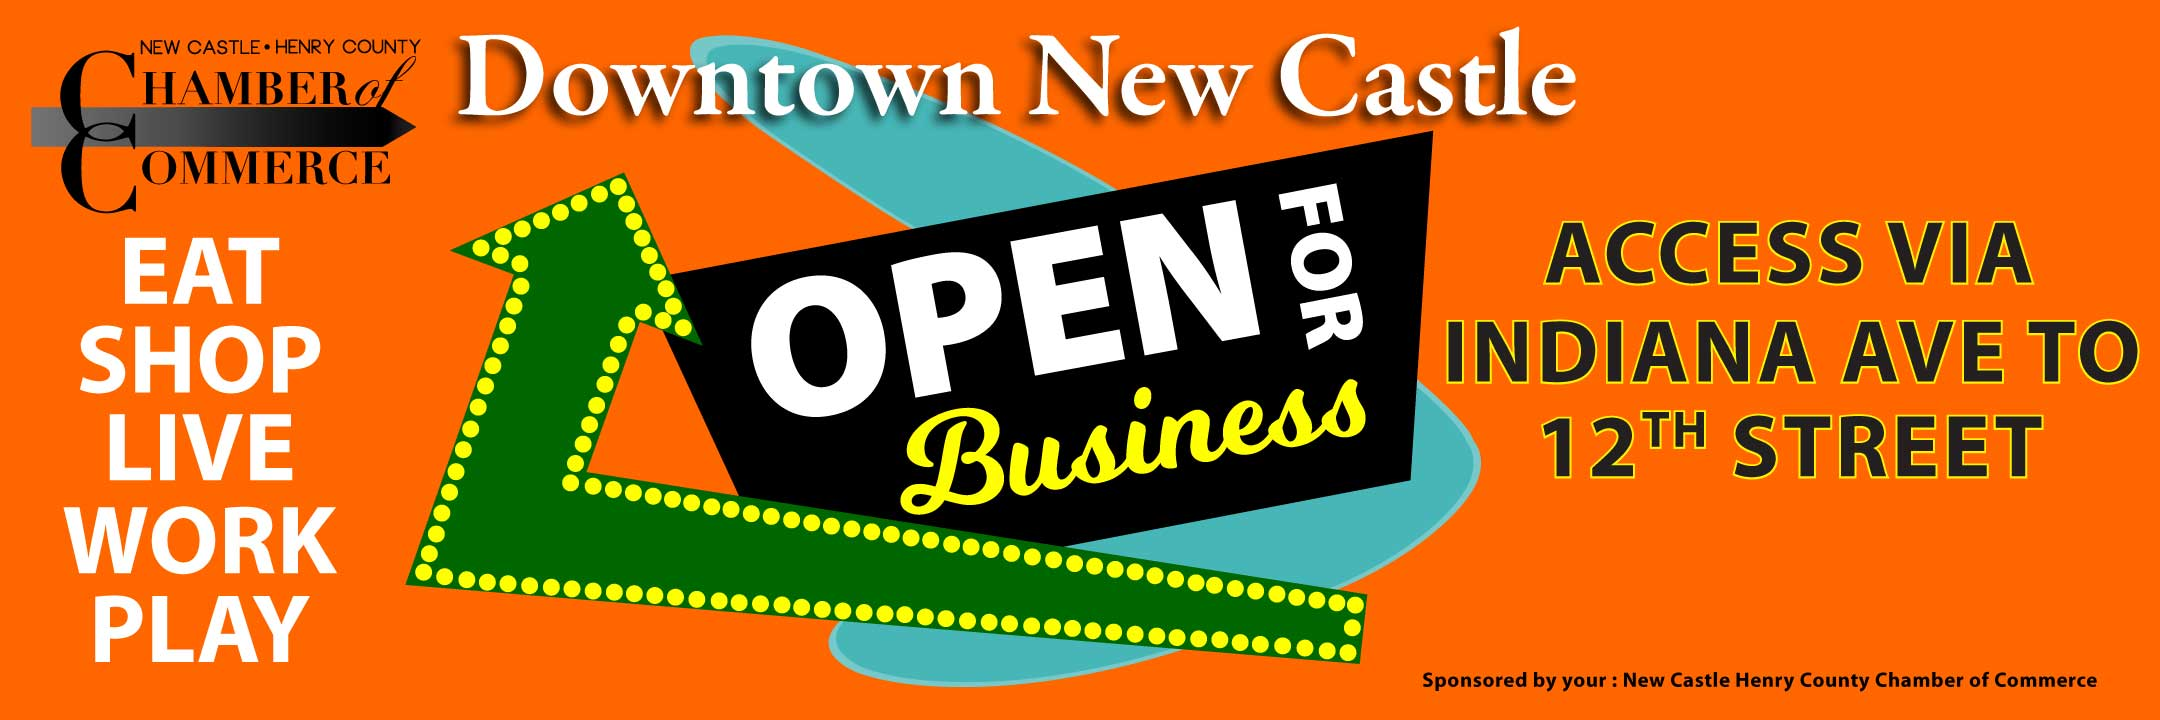 Downtown New Castle is Open for Business!